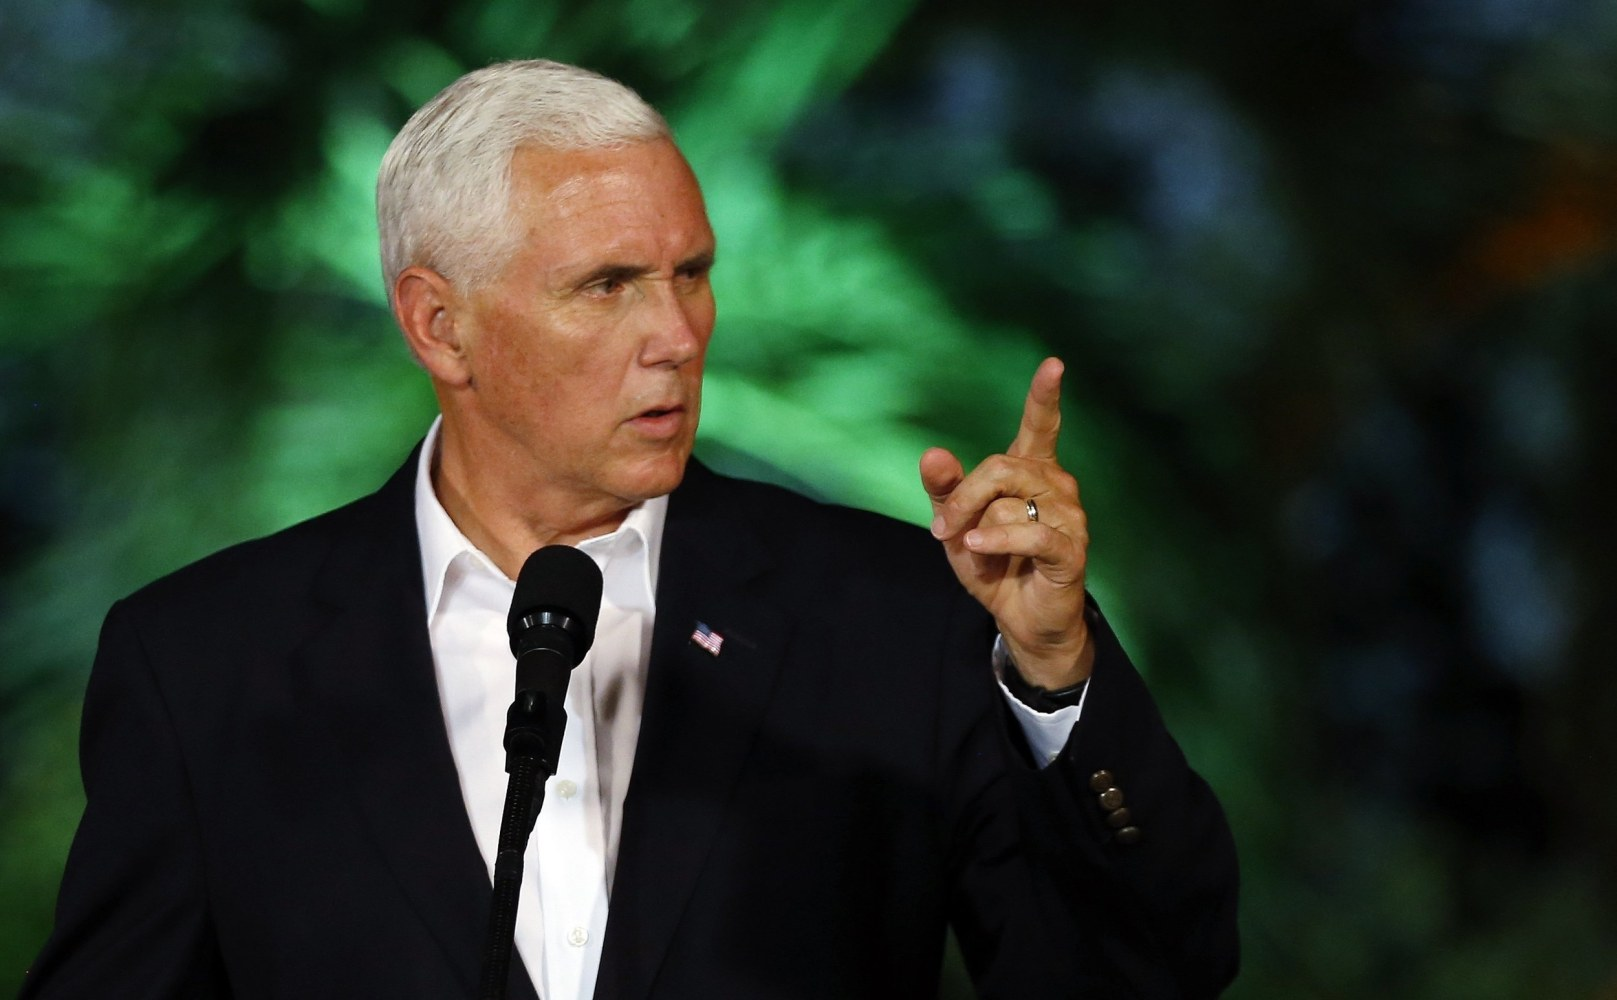 Pence Detail Members Reassigned After Bringing Women to Hotel